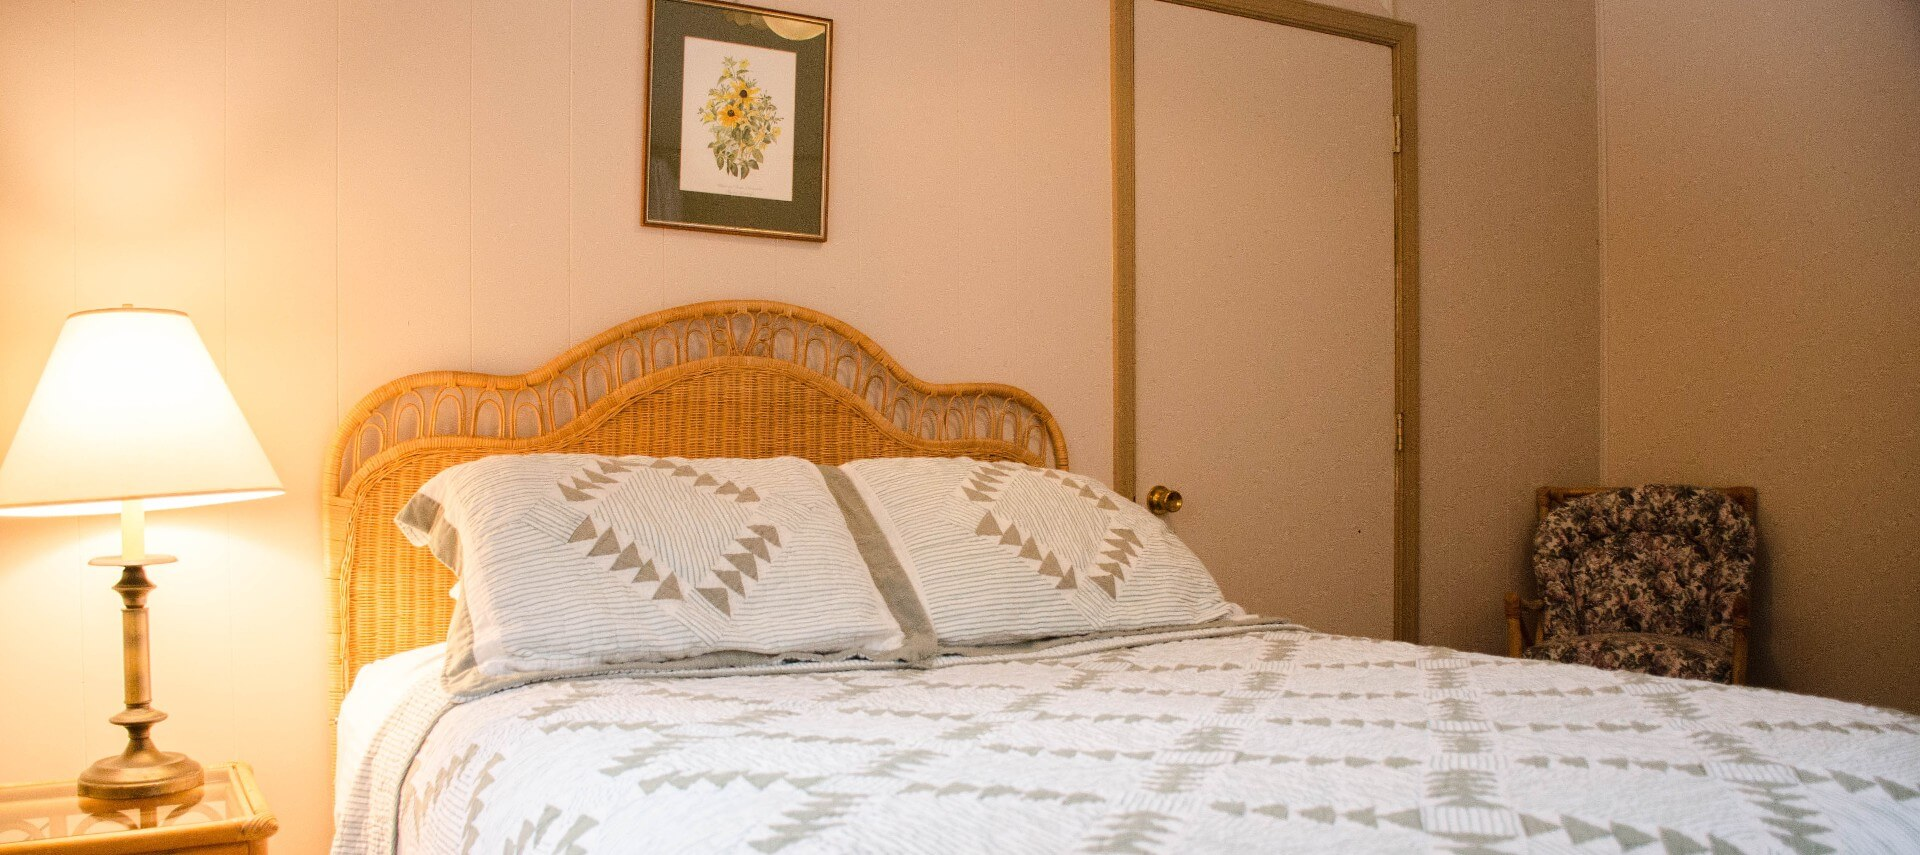 Bedroom with light brown wicker furniture, white and gray bedding, small chair, and lamp